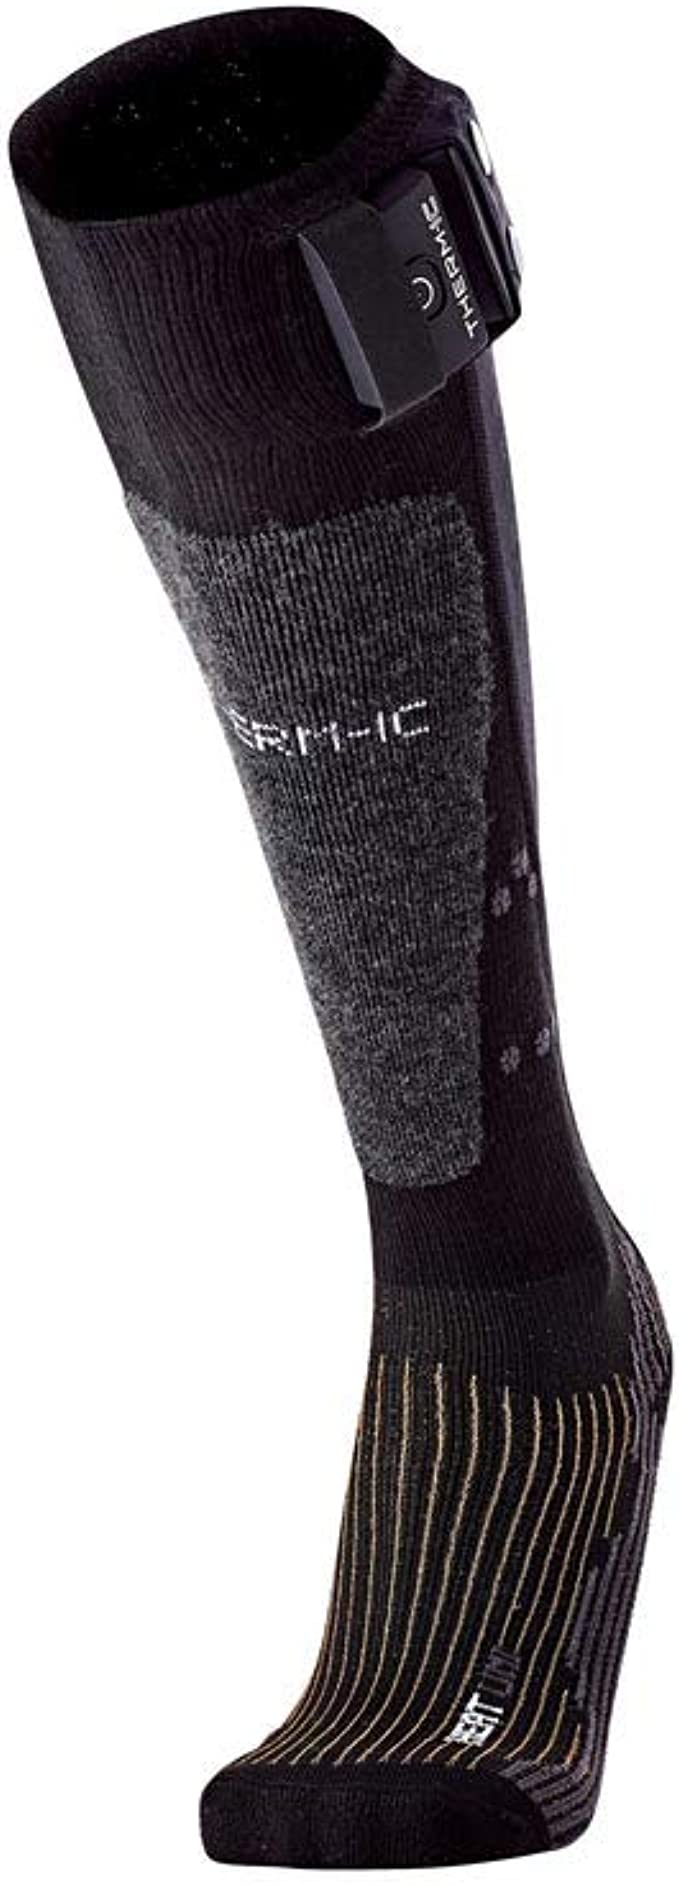 best heated ski socks